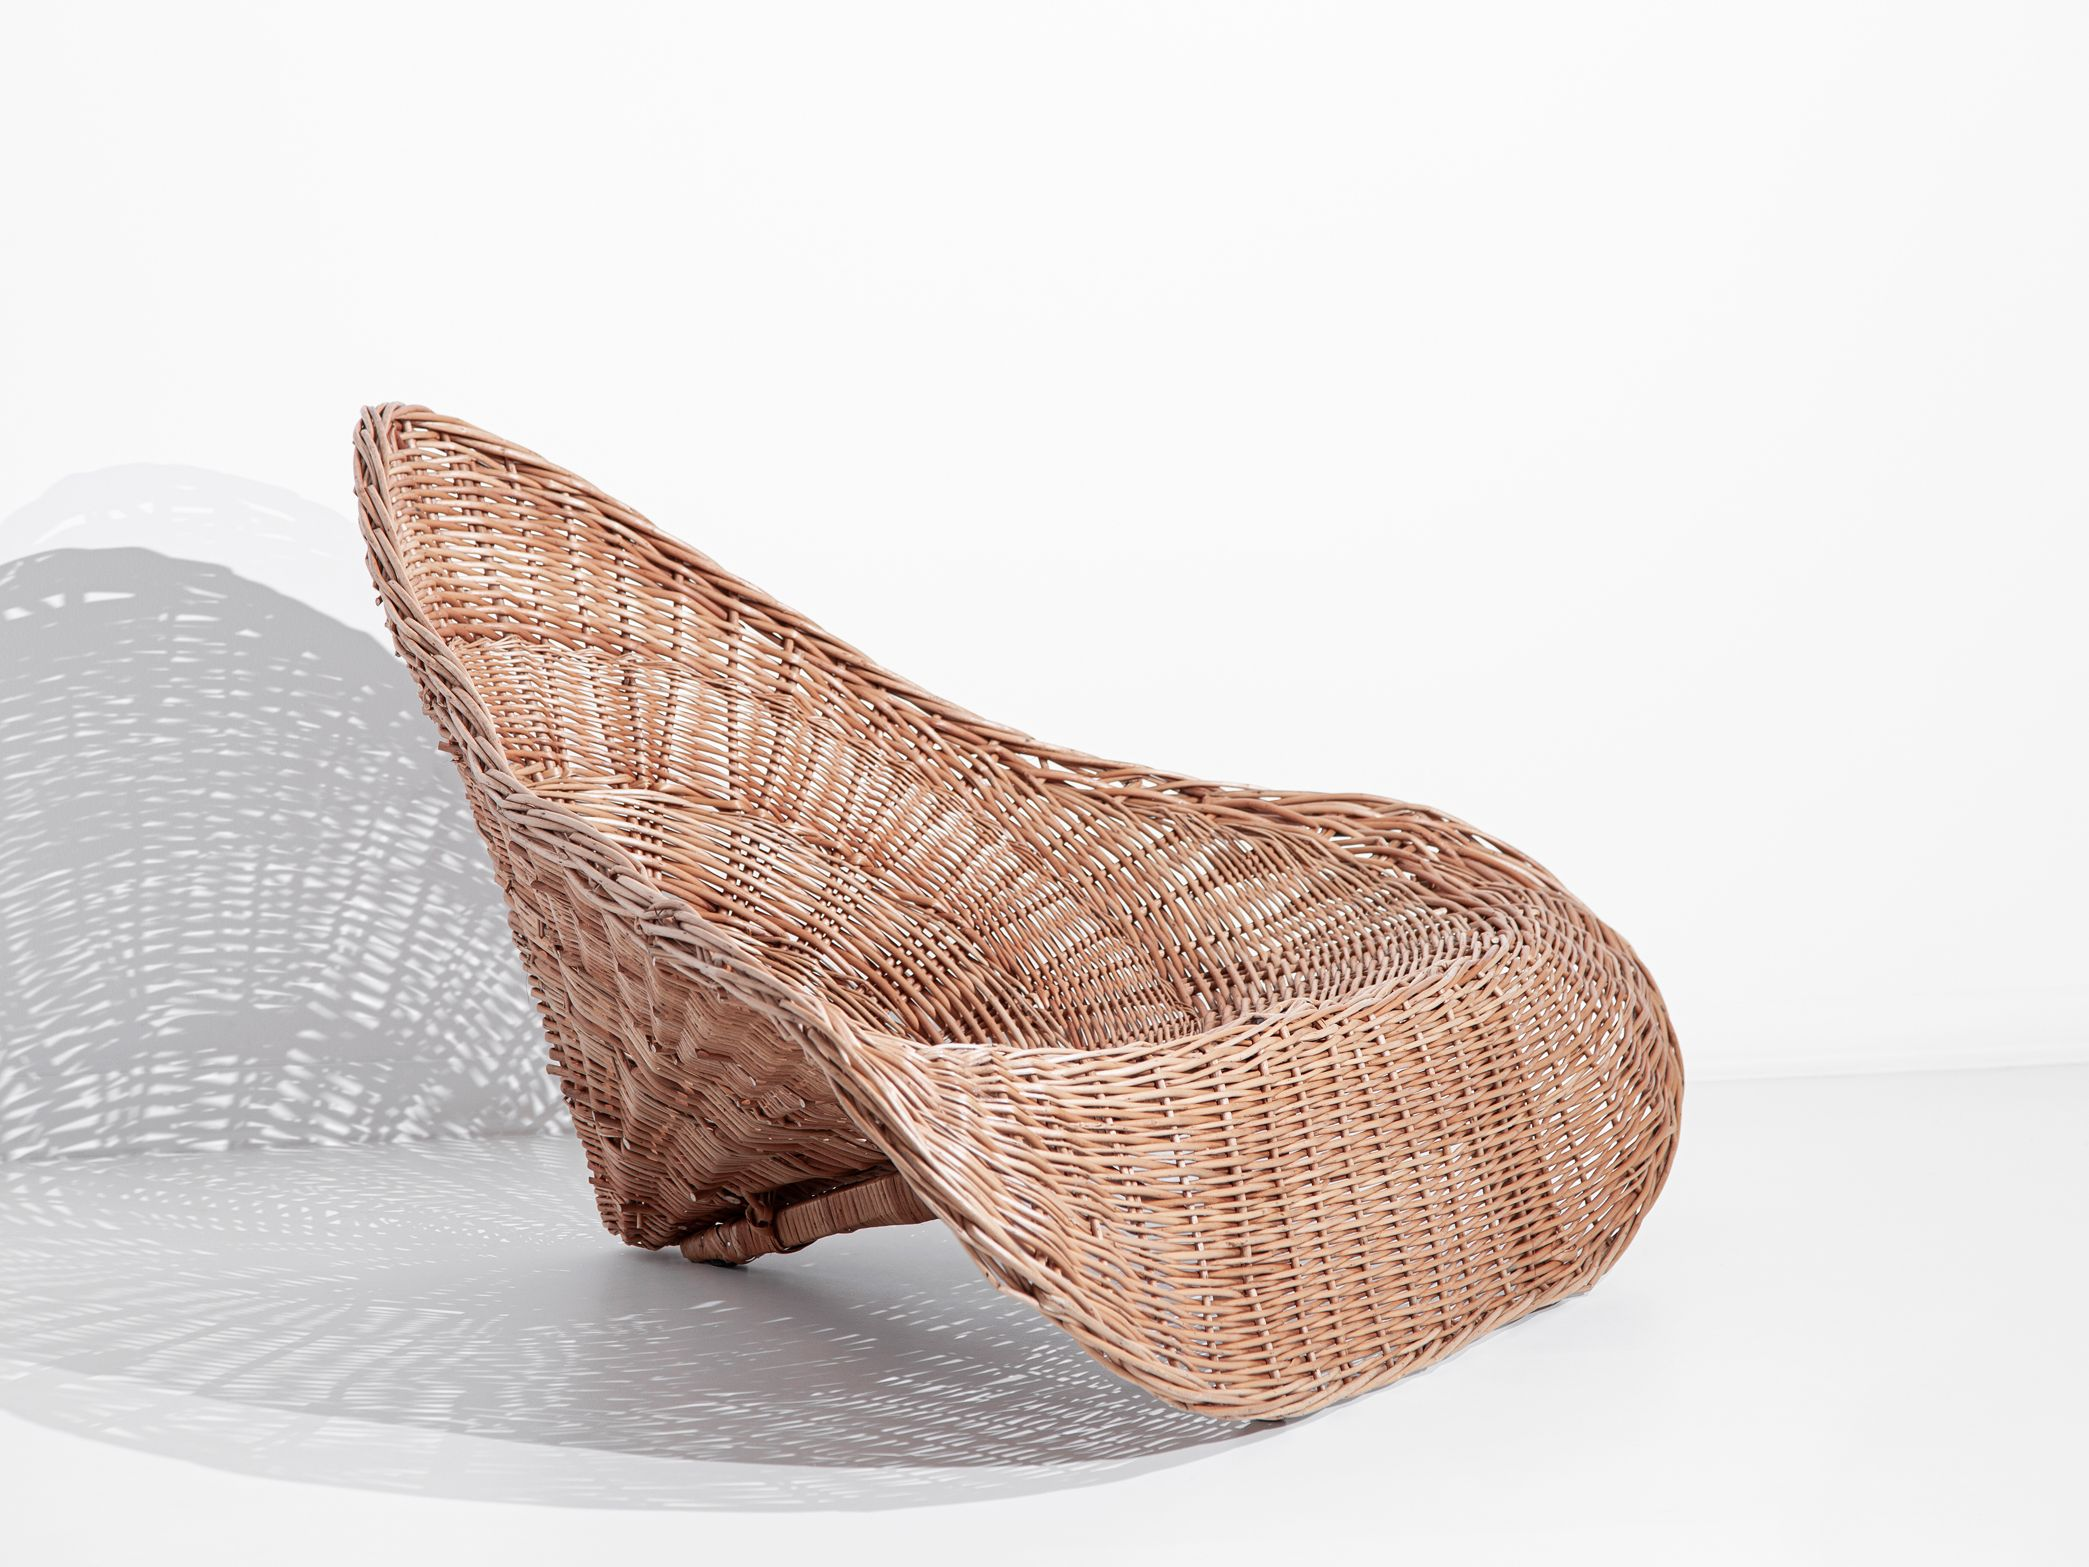 Pico wicker lounge chair - OWN